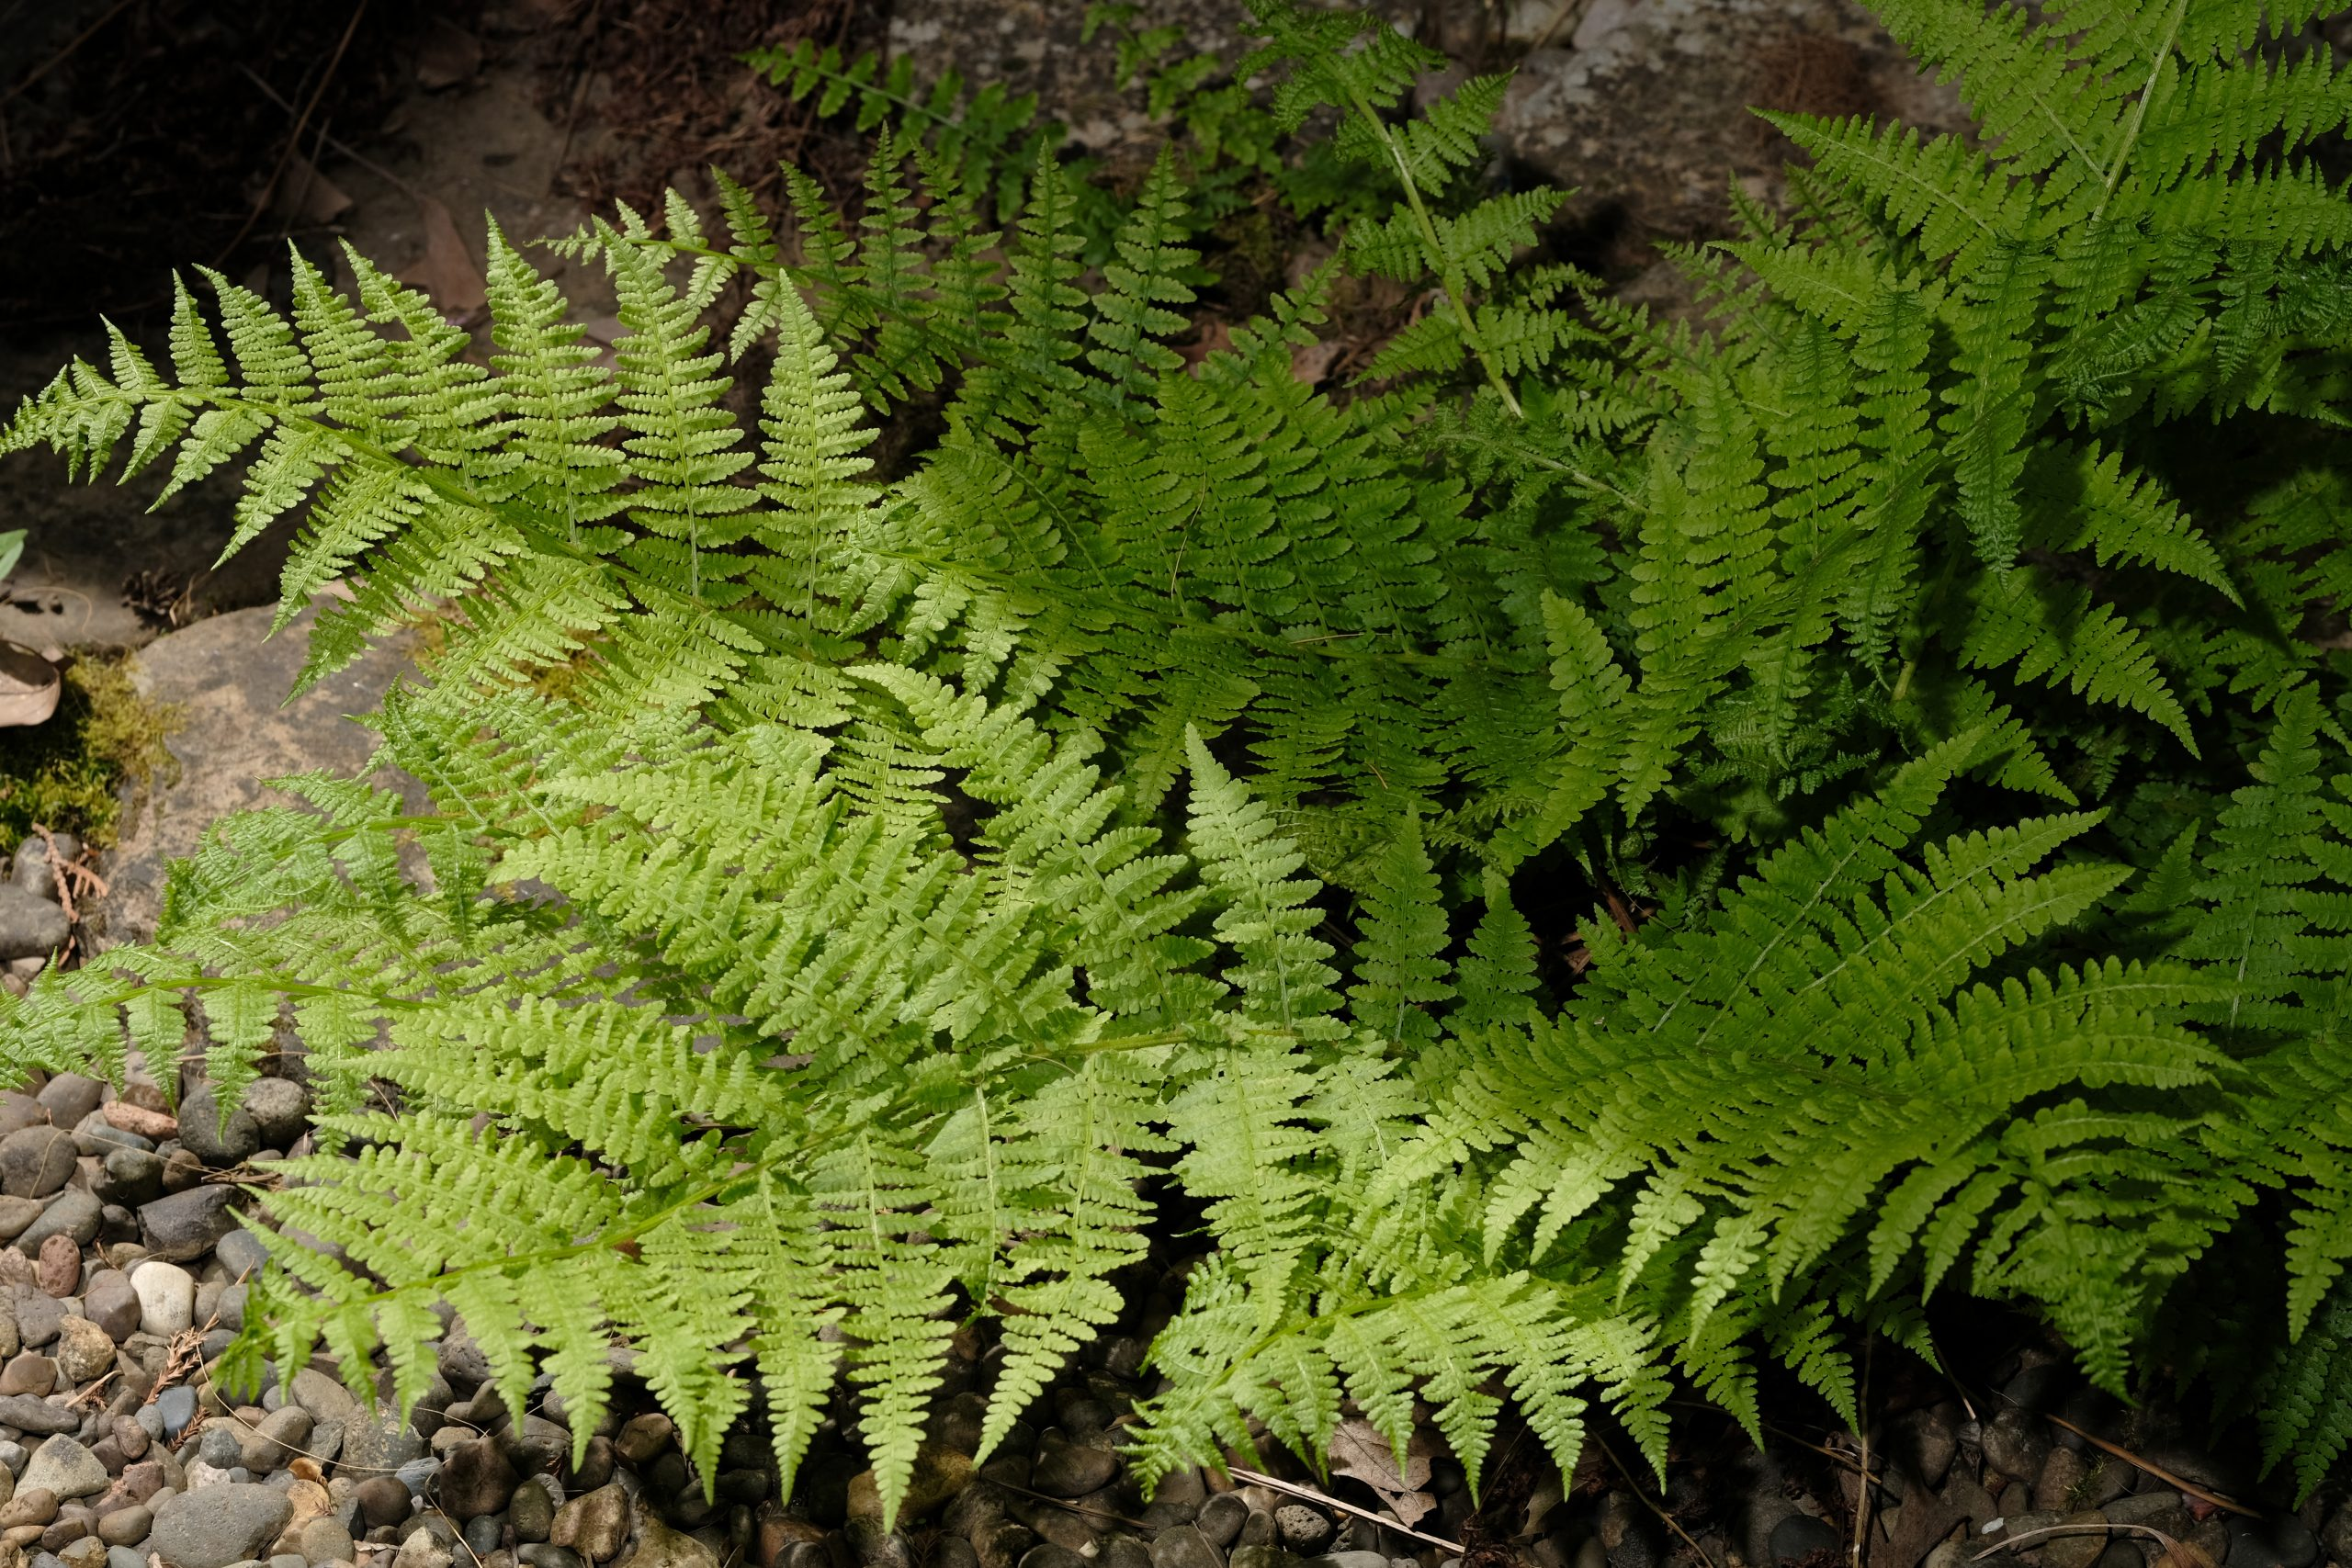 Fern_Oregon 2 May 2021 Copyright Steve J Davis